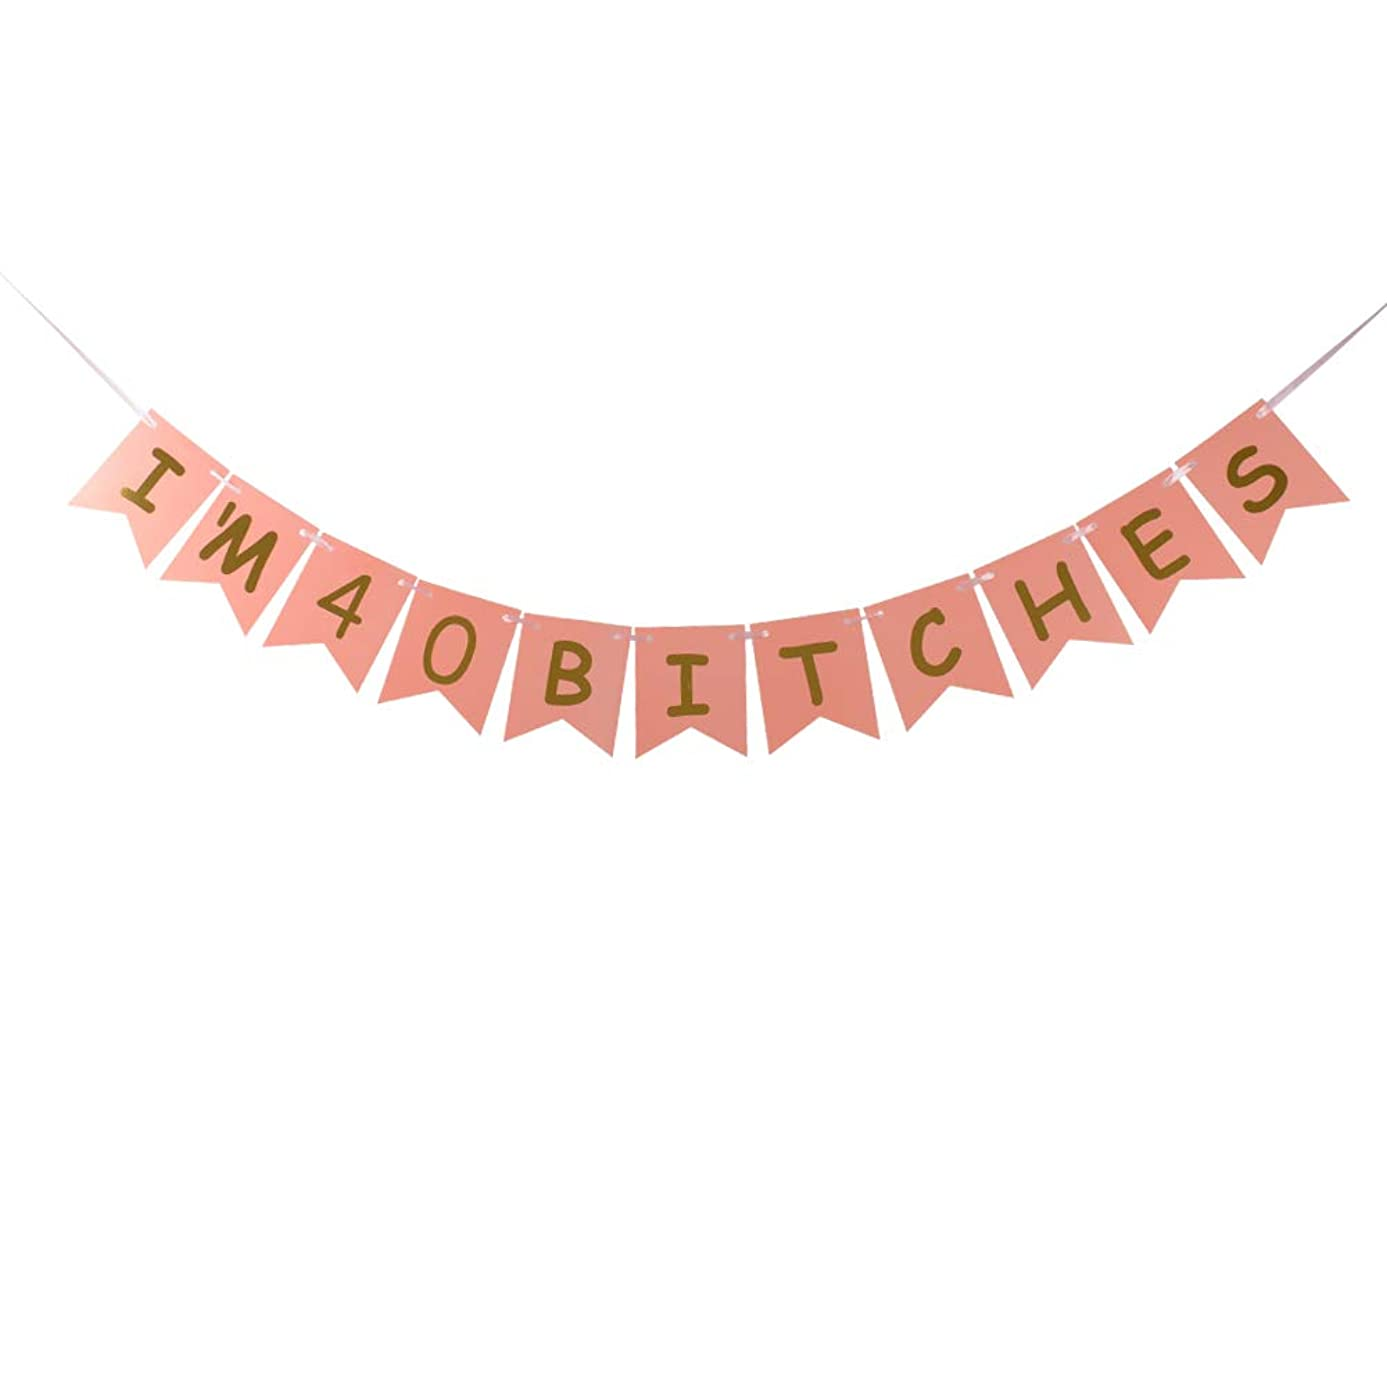 I'm 40 Bitches Banner Pink Card Gold Glitter Letters Special Offer for 40th Birthday Decorations Pink Card Pertlife